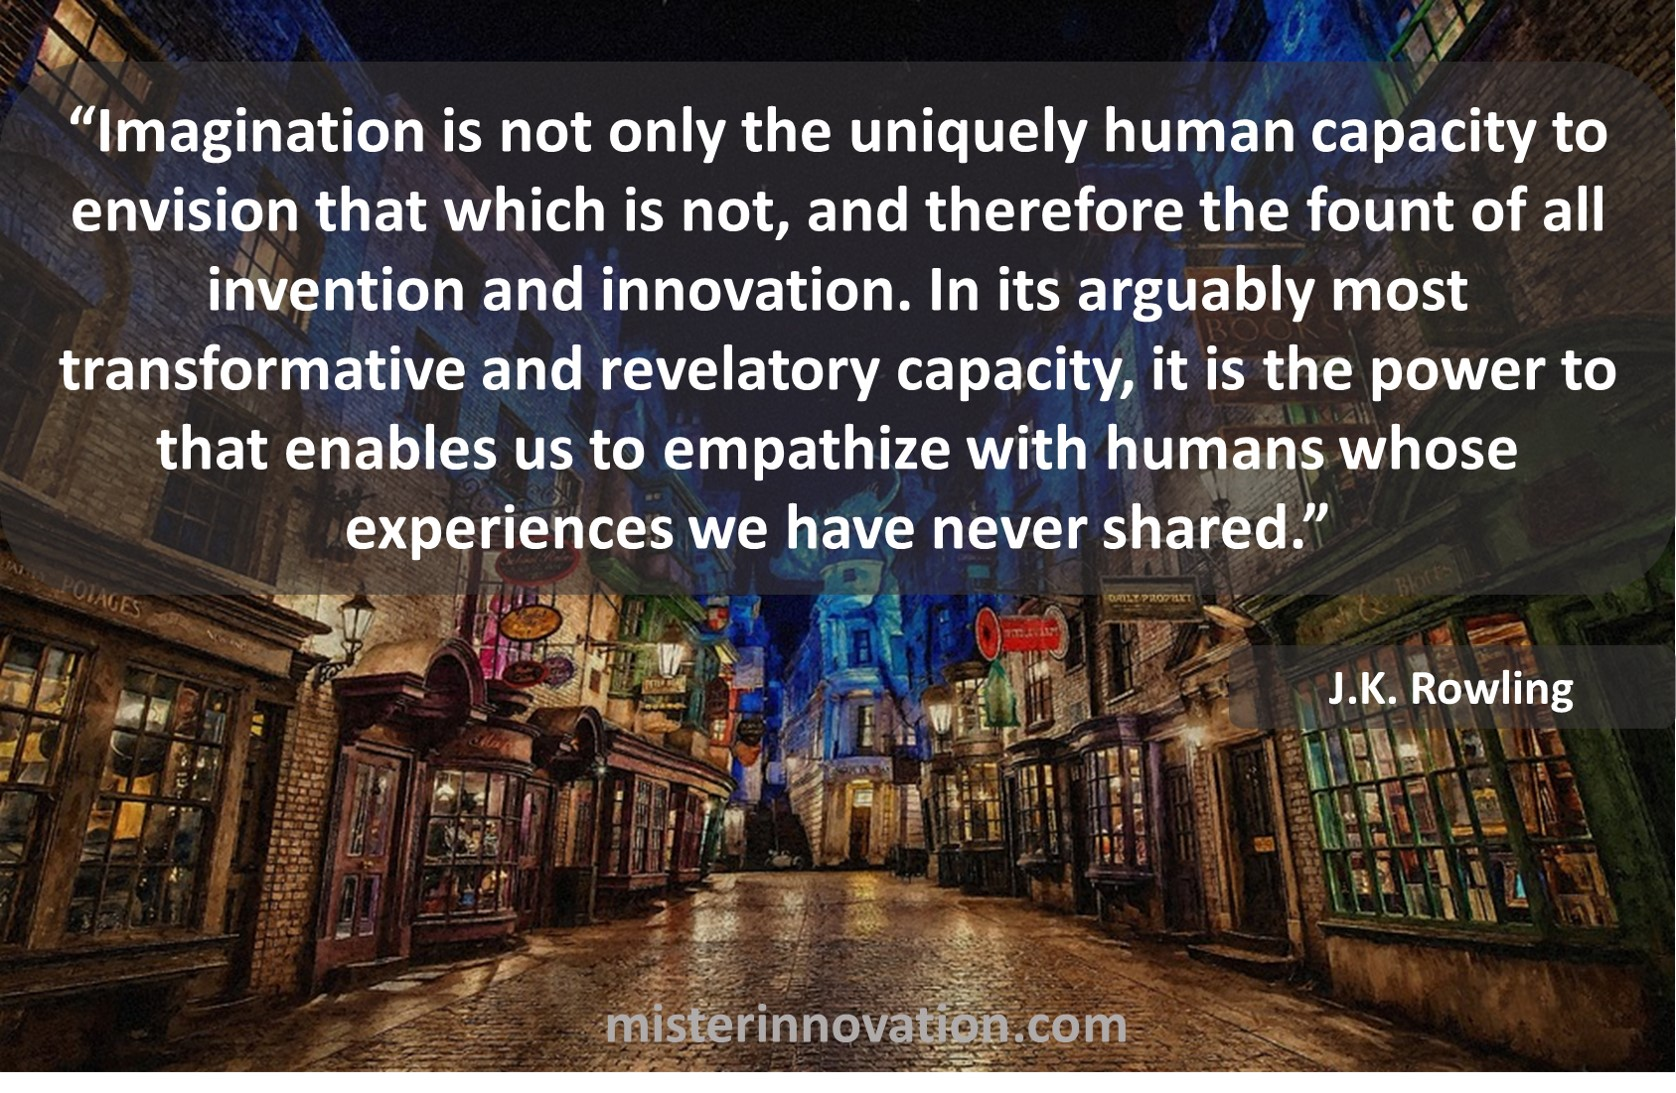 JK Rowling Quote on Imagination and Innovation